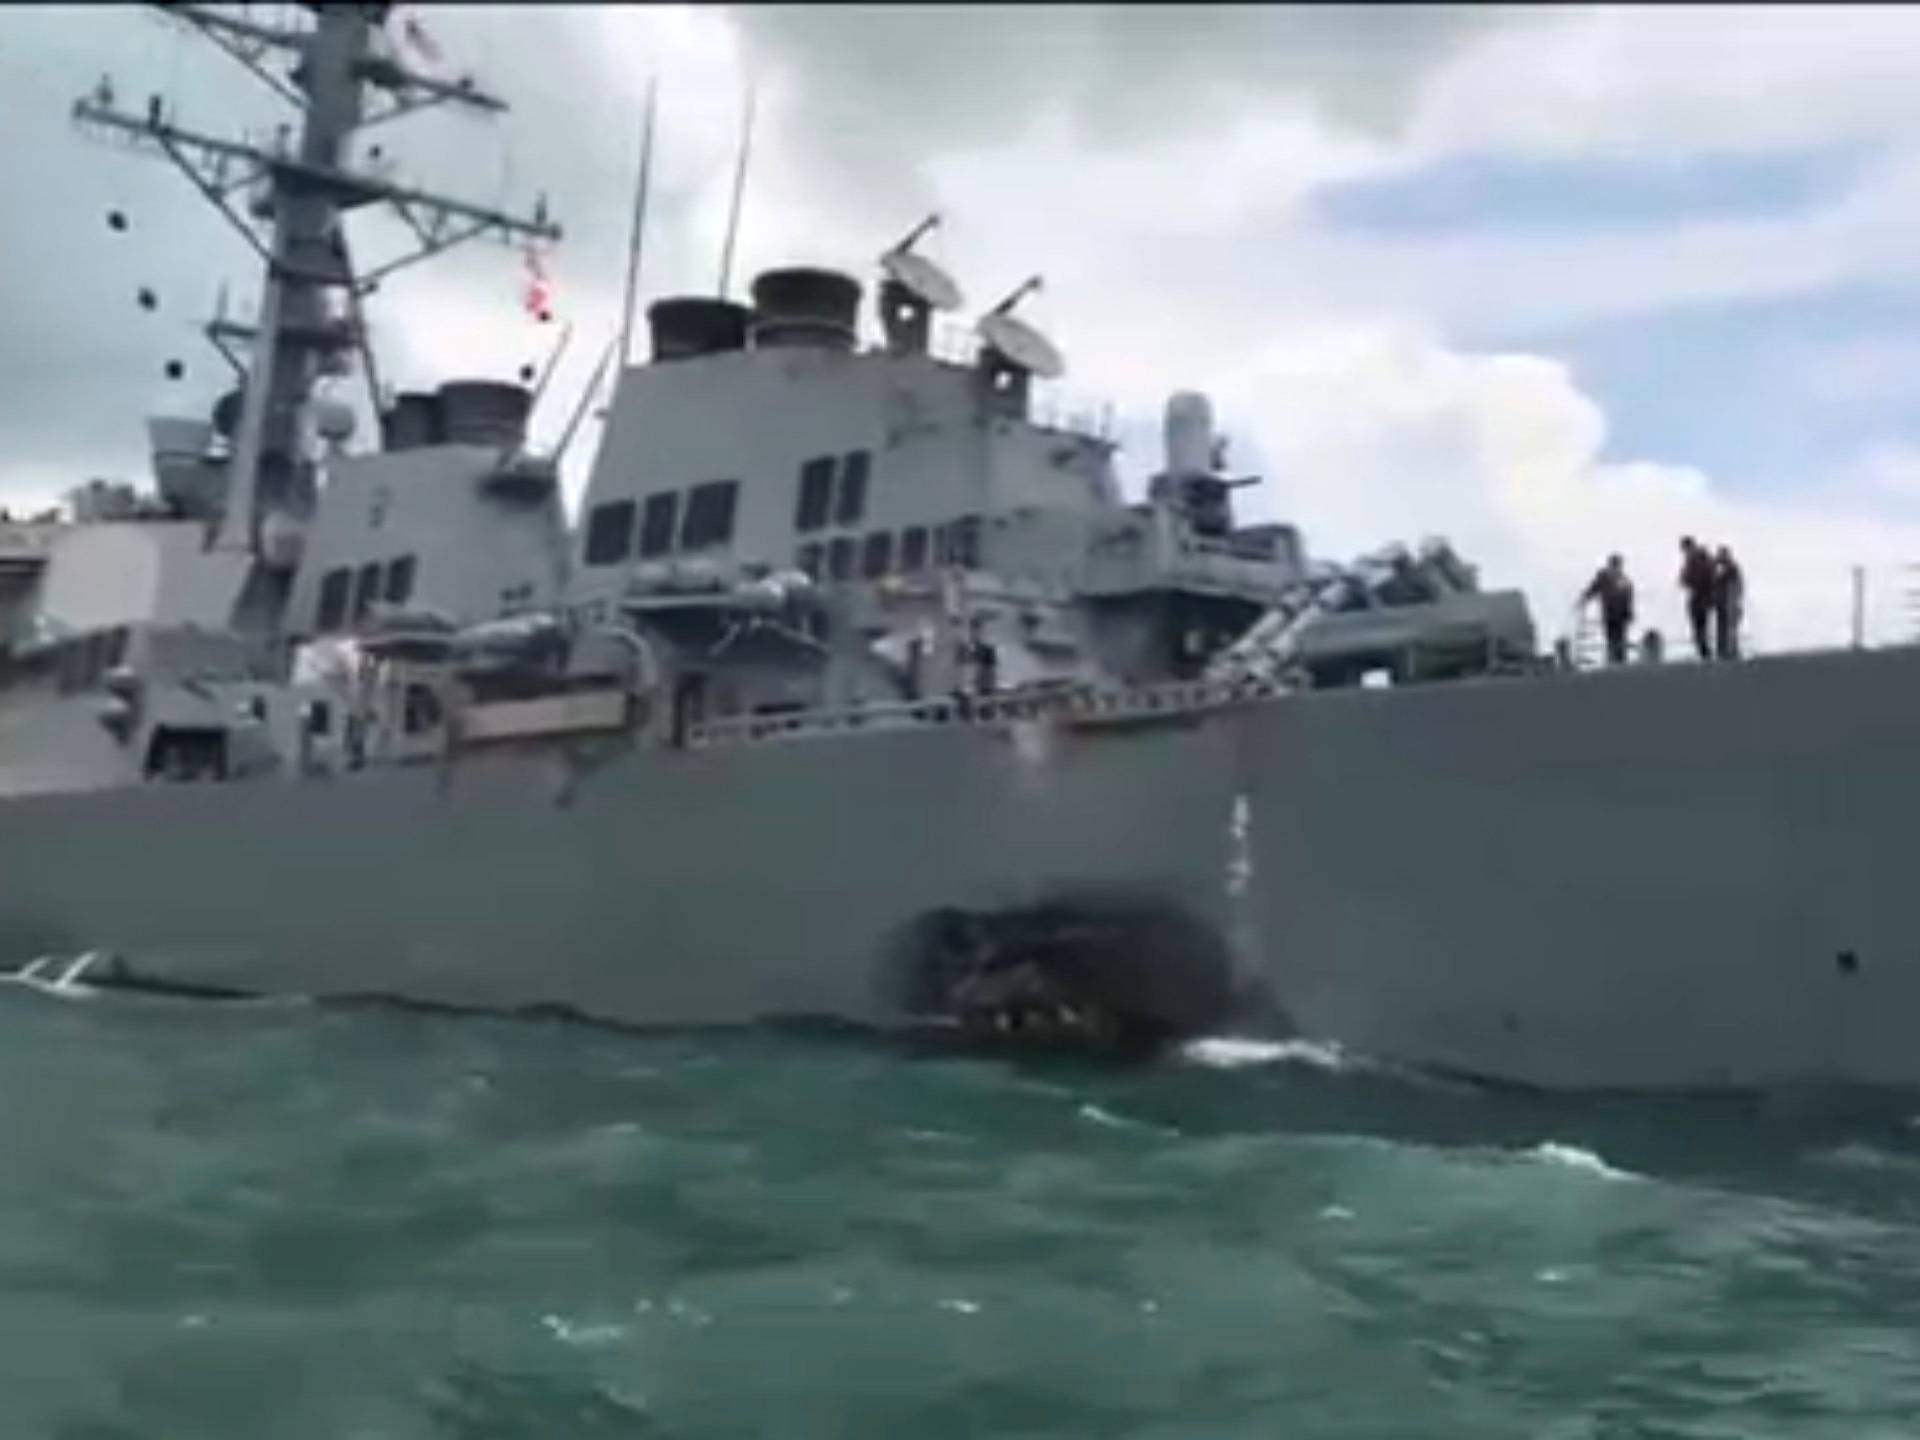 The U.S. Navy guided-missile destroyer USS John S. McCain is seen after a collision, in Singapore waters in this still frame taken from video